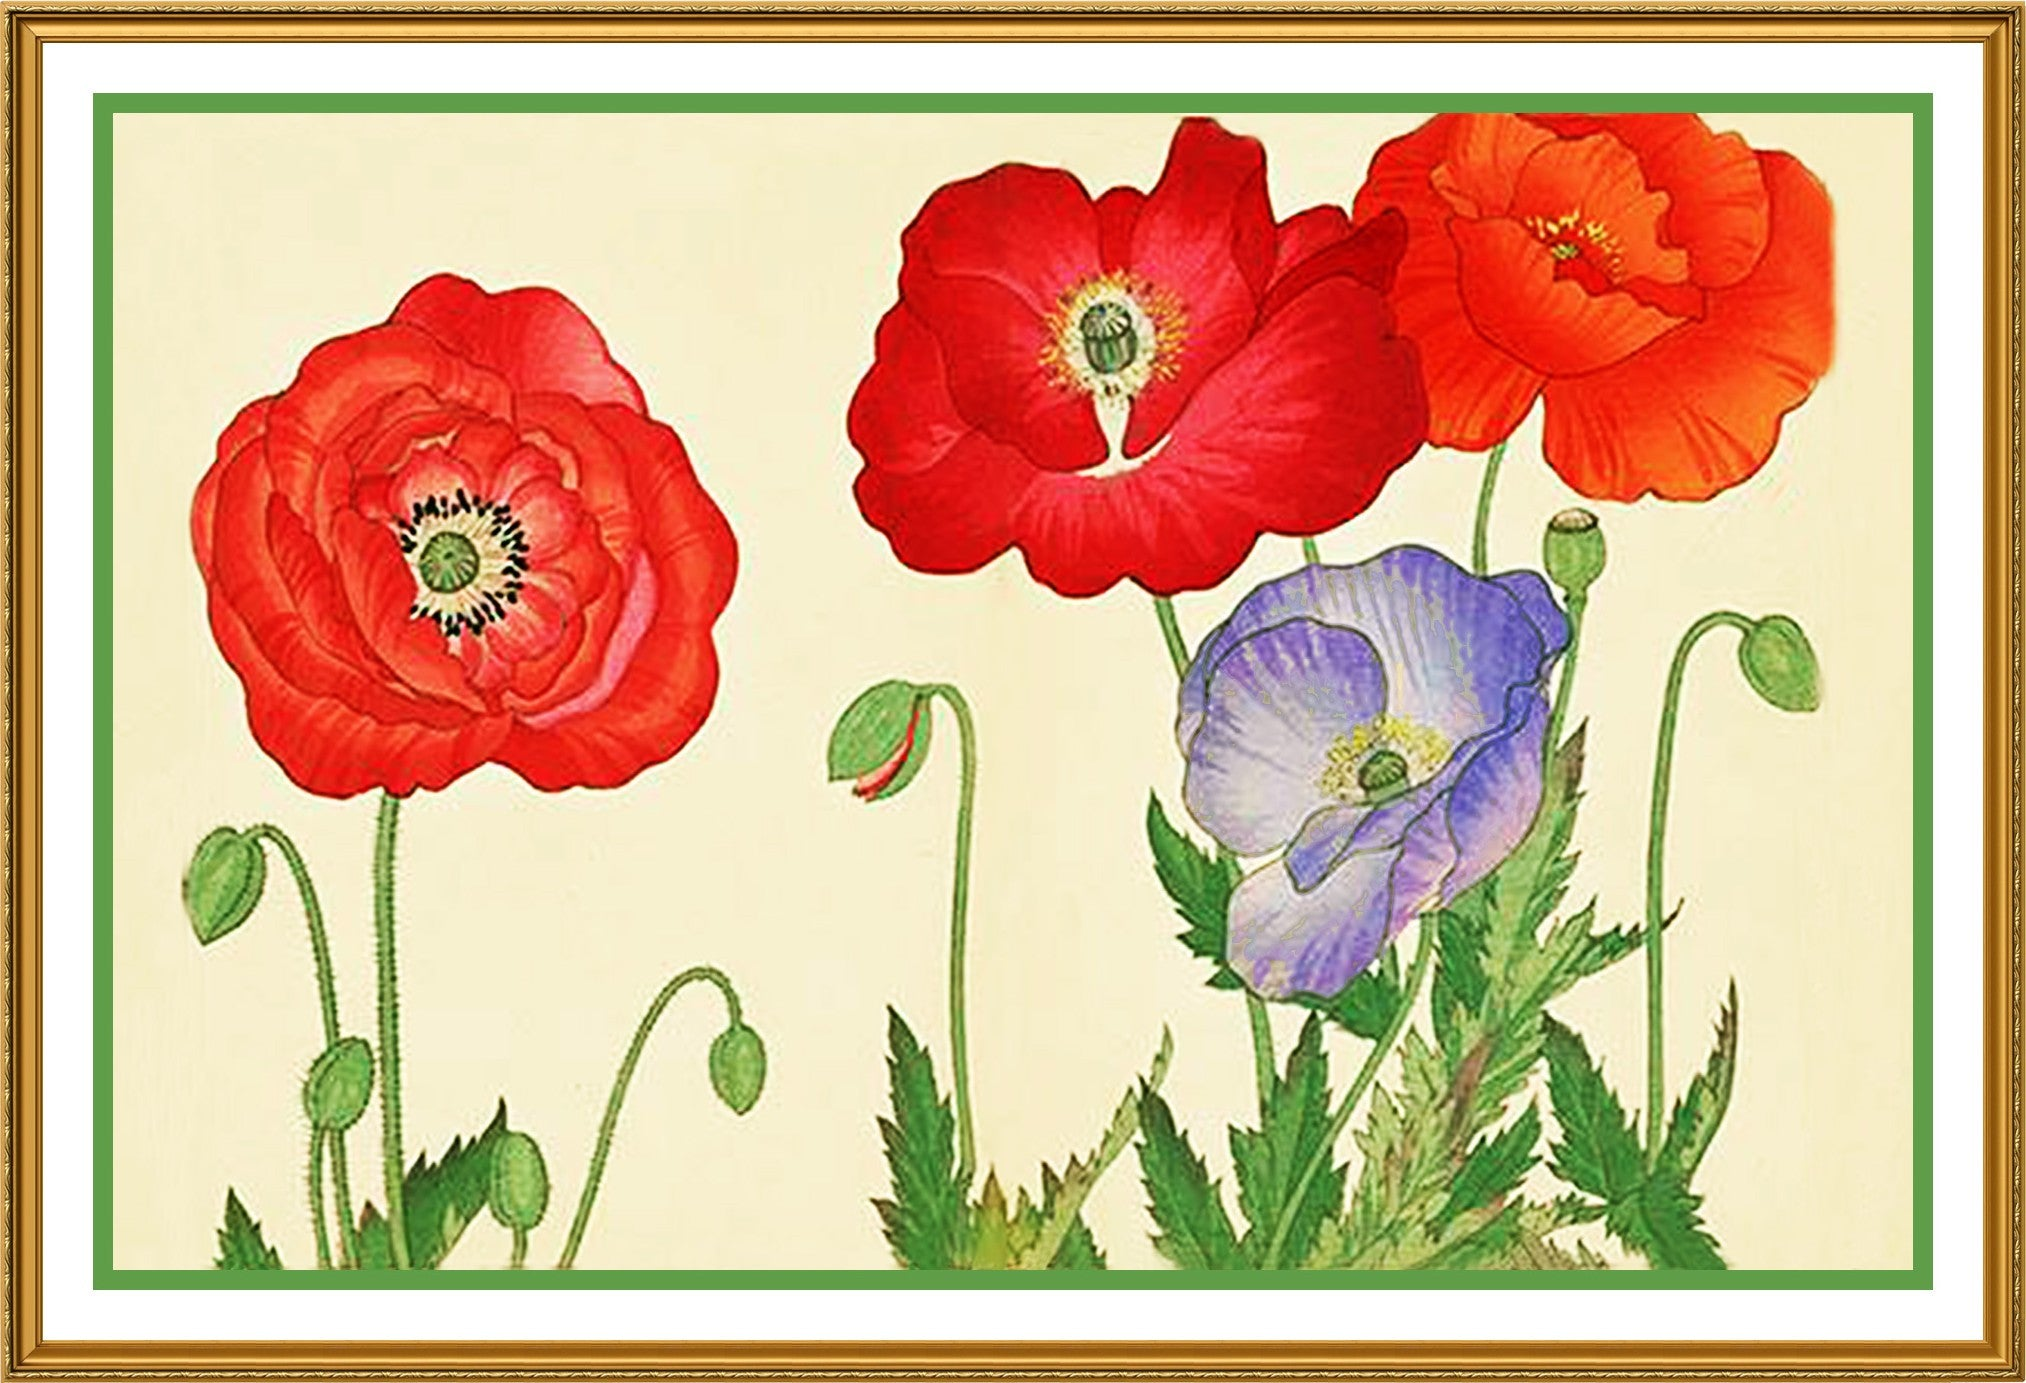 Tanigami konan asian poppy flowers counted cross stitch or counted tanigami konan asian poppy flowers counted cross stitch or counted needlepoint pattern mightylinksfo